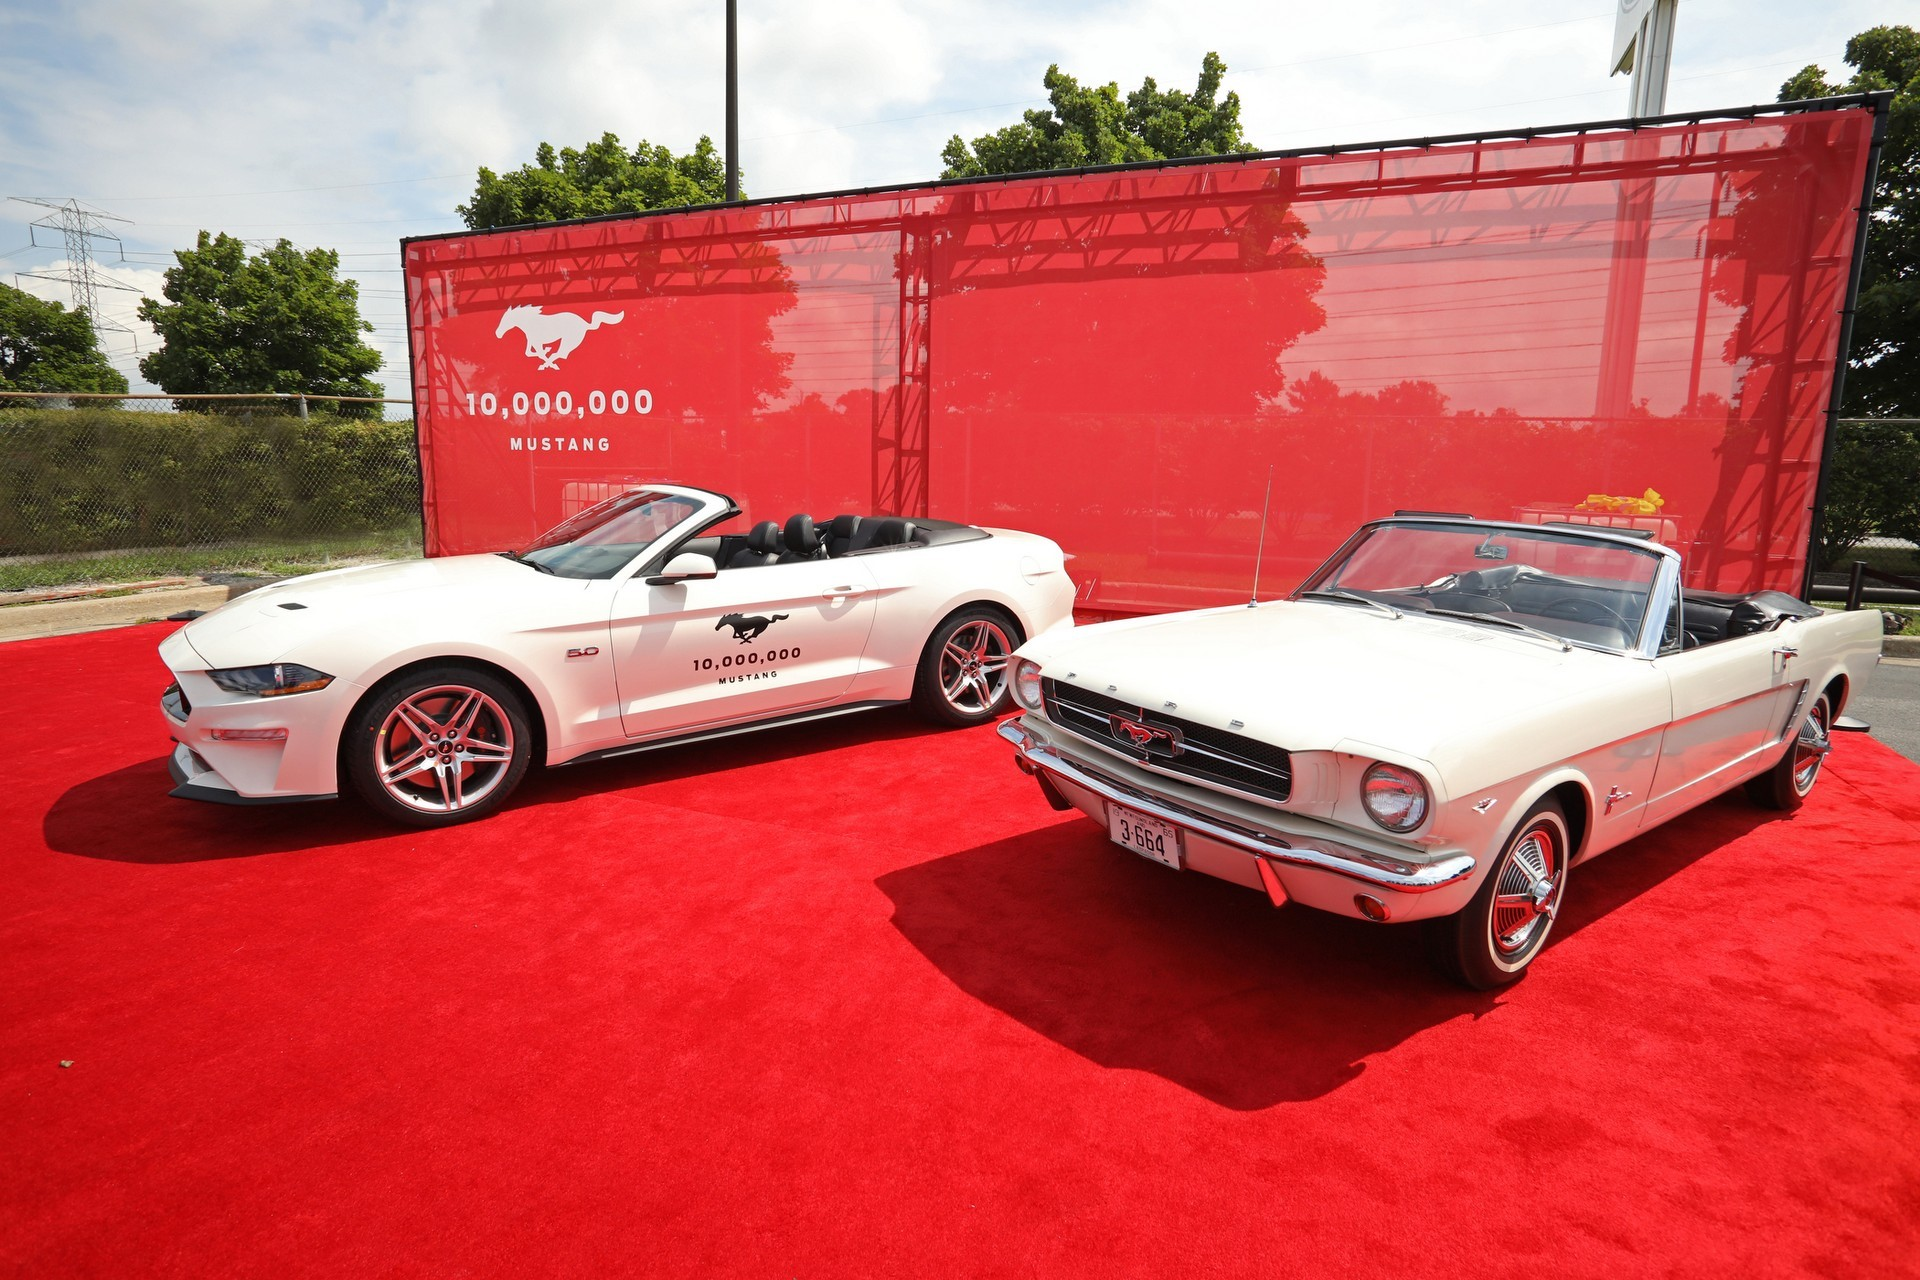 Ford Mustang 10 million (4)